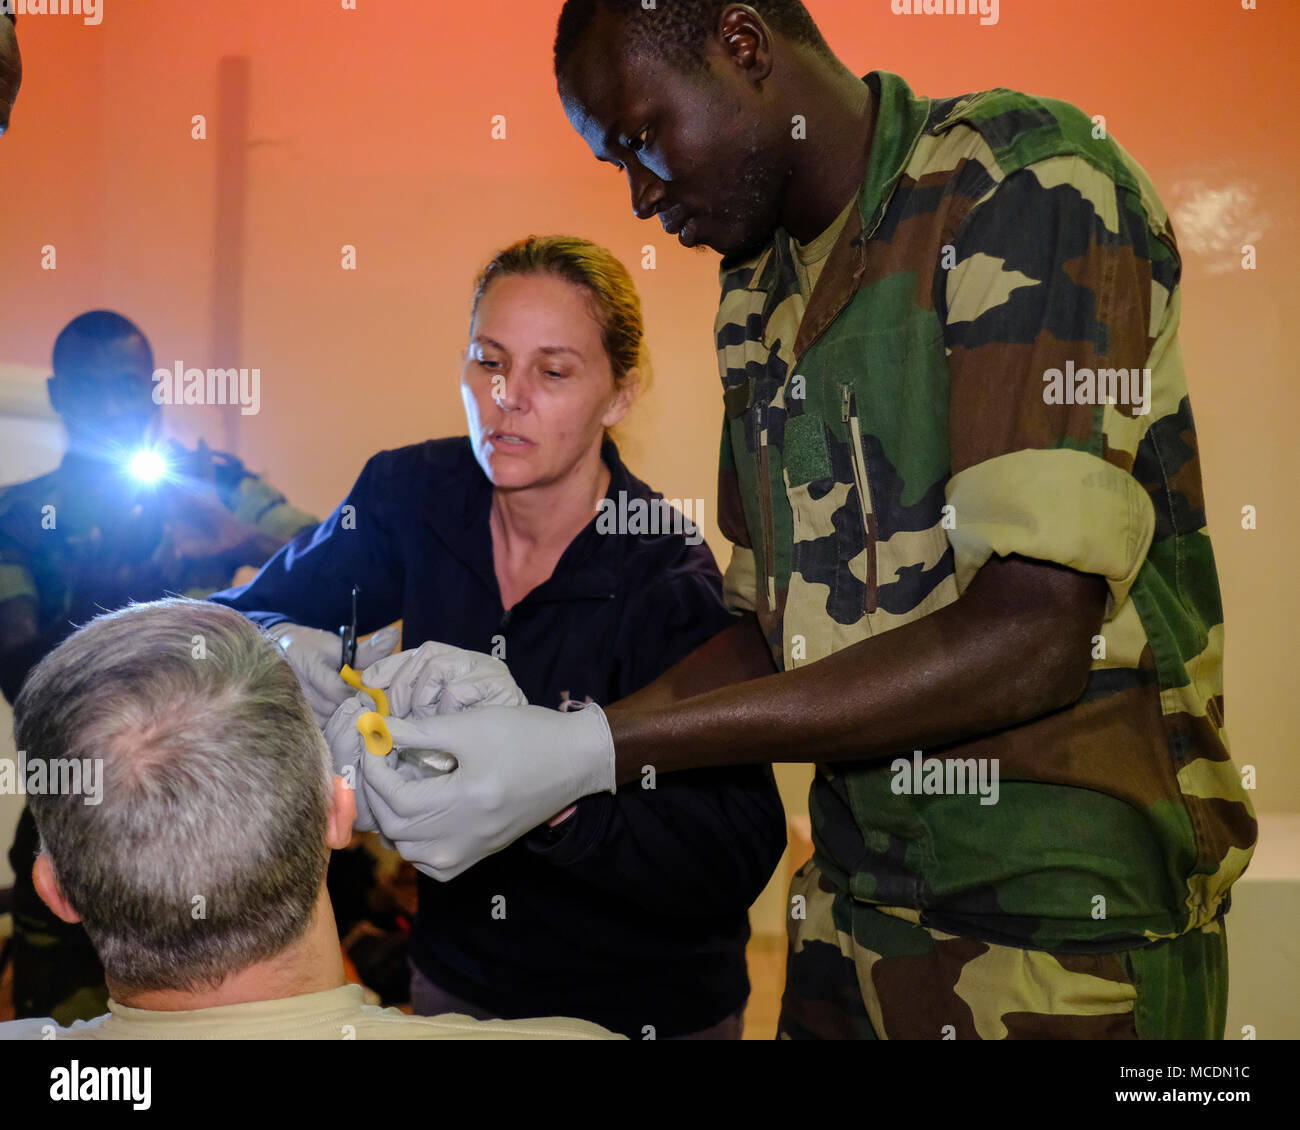 Cpl. Boubacar Seydi, infirmier with the Senegalese army, measures a nasopharyngeal airway as U.S Army Sgt. April Swafford, medic with Munson Army Health Center, Fort Leavenworth, Kansas, cuts it to proper length during a pre-hospital trauma care workshop taught by U.S. Army medical personnel at Base Militaire Bel Air, Senegal, during MEDRETE 18-1, Feb. 20, 2018. MEDRETE is a combined effort between the Senegalese government, U.S. Army Africa, and the Vermont National Guard. MEDRETE 18-1 is the first in a series of medical readiness training exercises that U.S. Army Africa is scheduled to facil - Stock Image